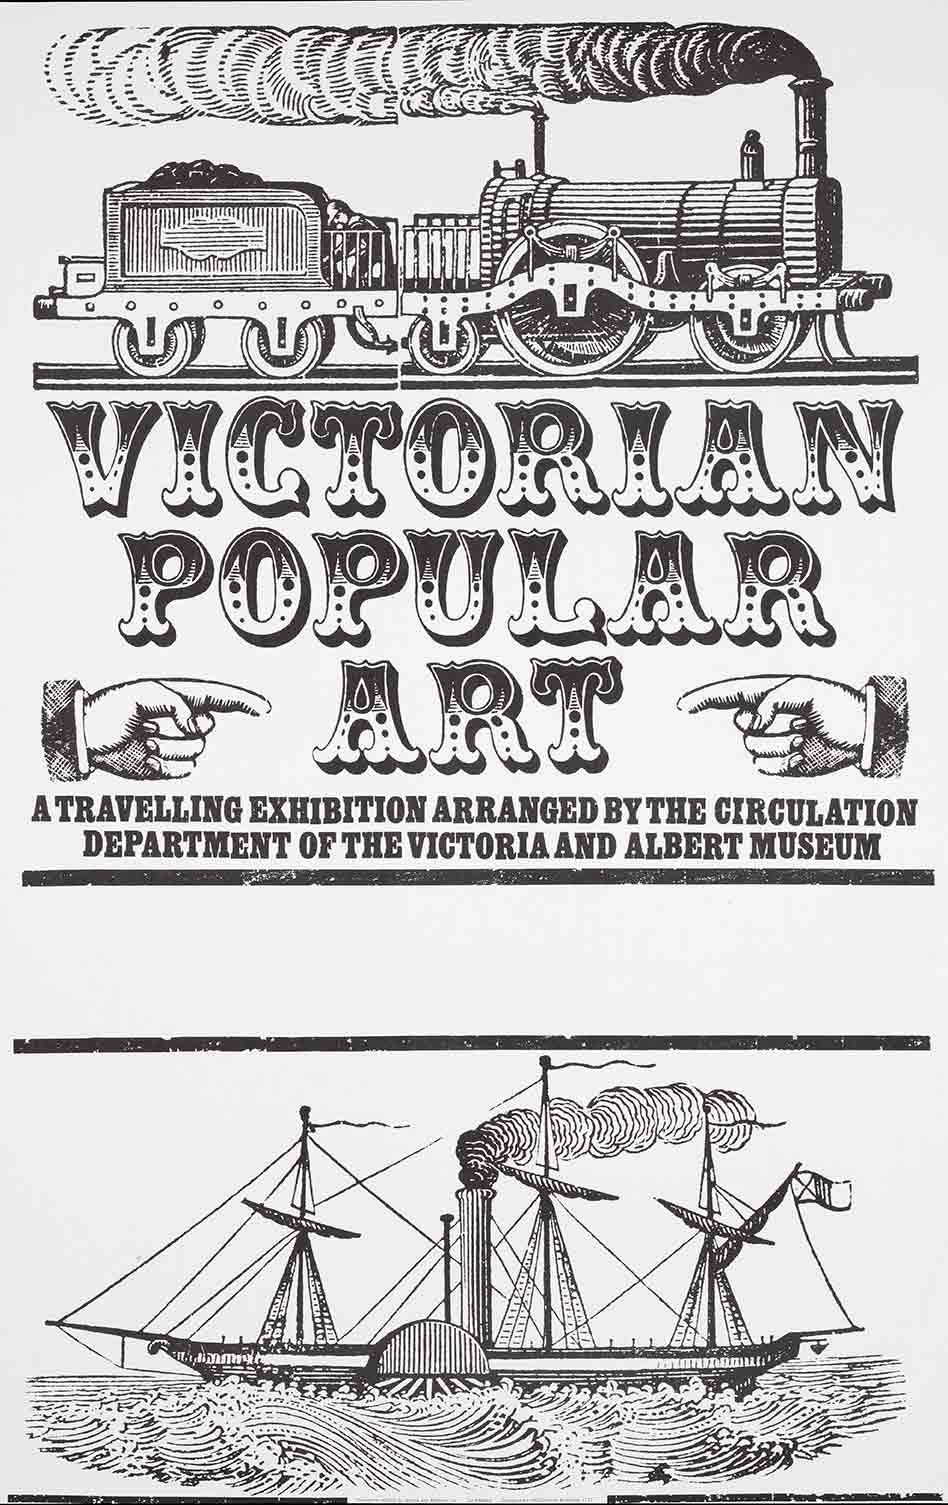 Victorian Popular Art exhibition poster (custom print)